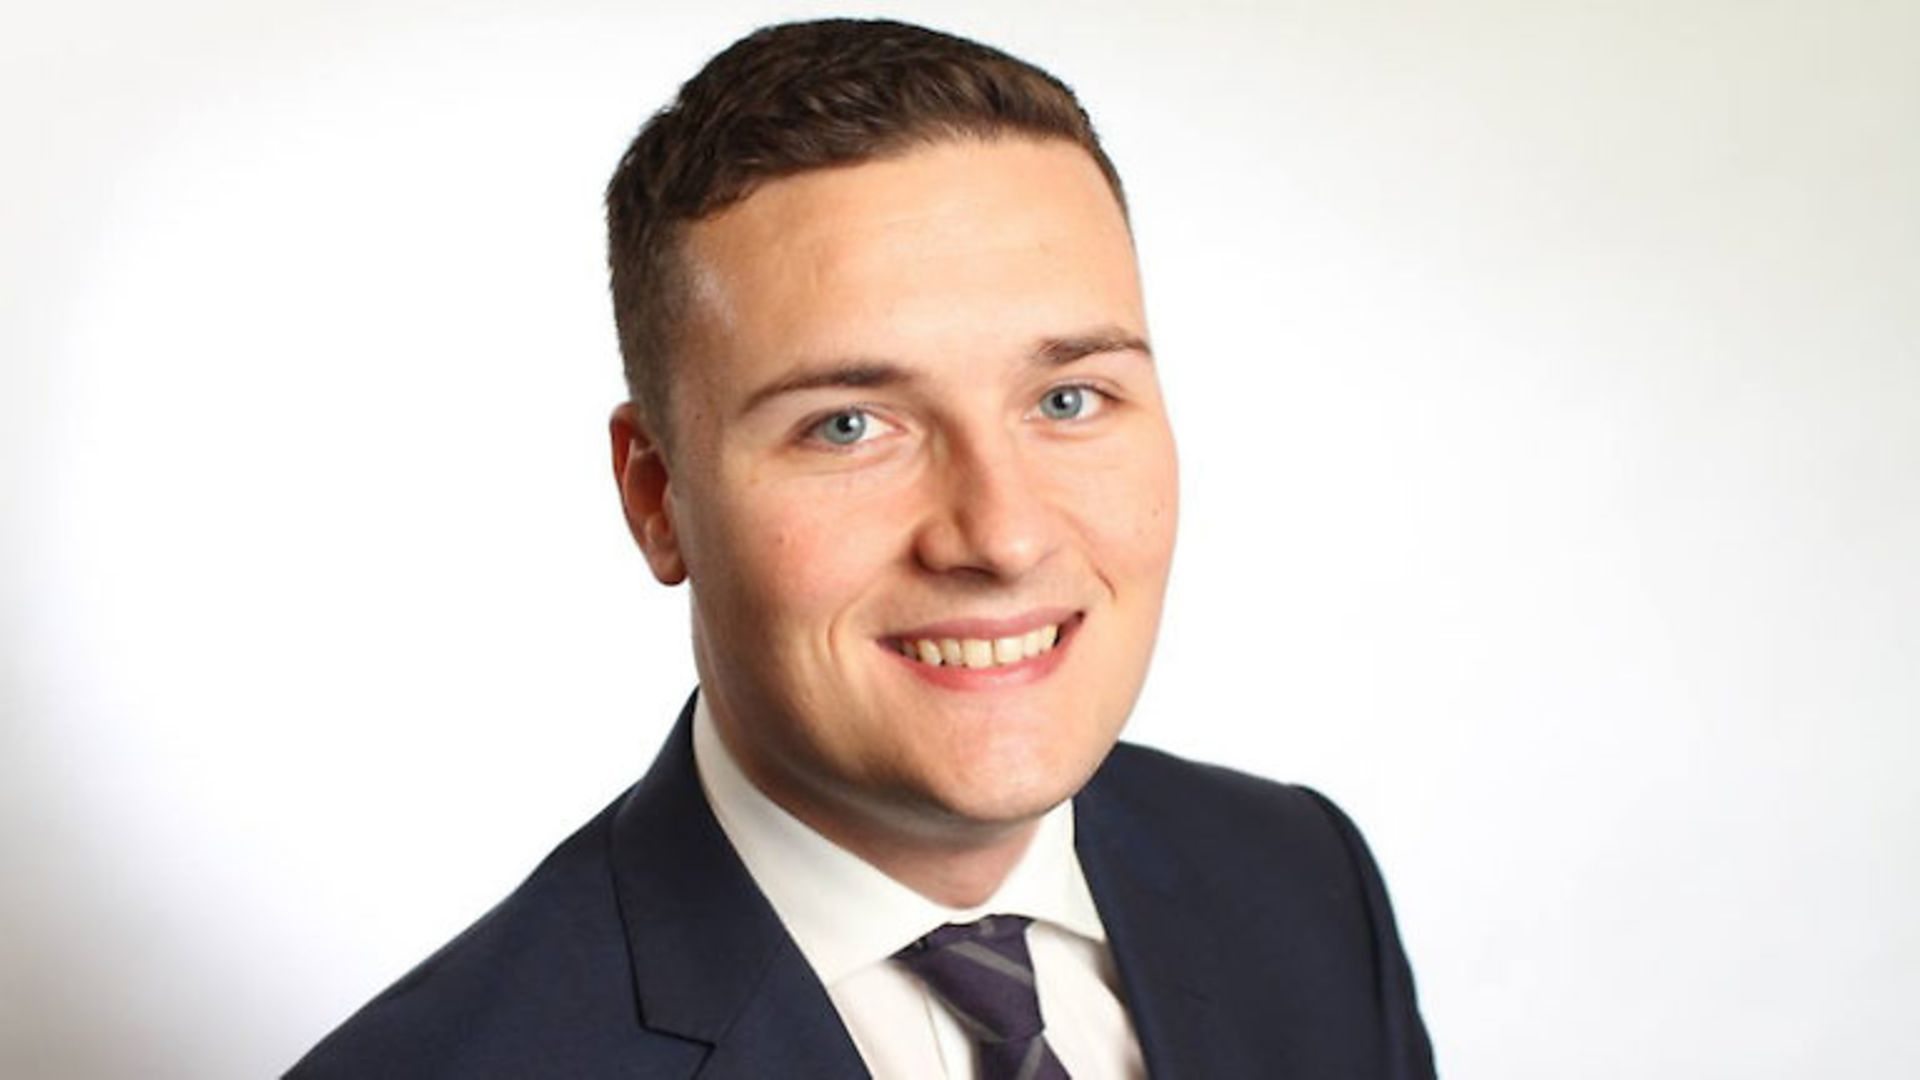 Labour MP Wes Streeting - Credit: Wes Streeting